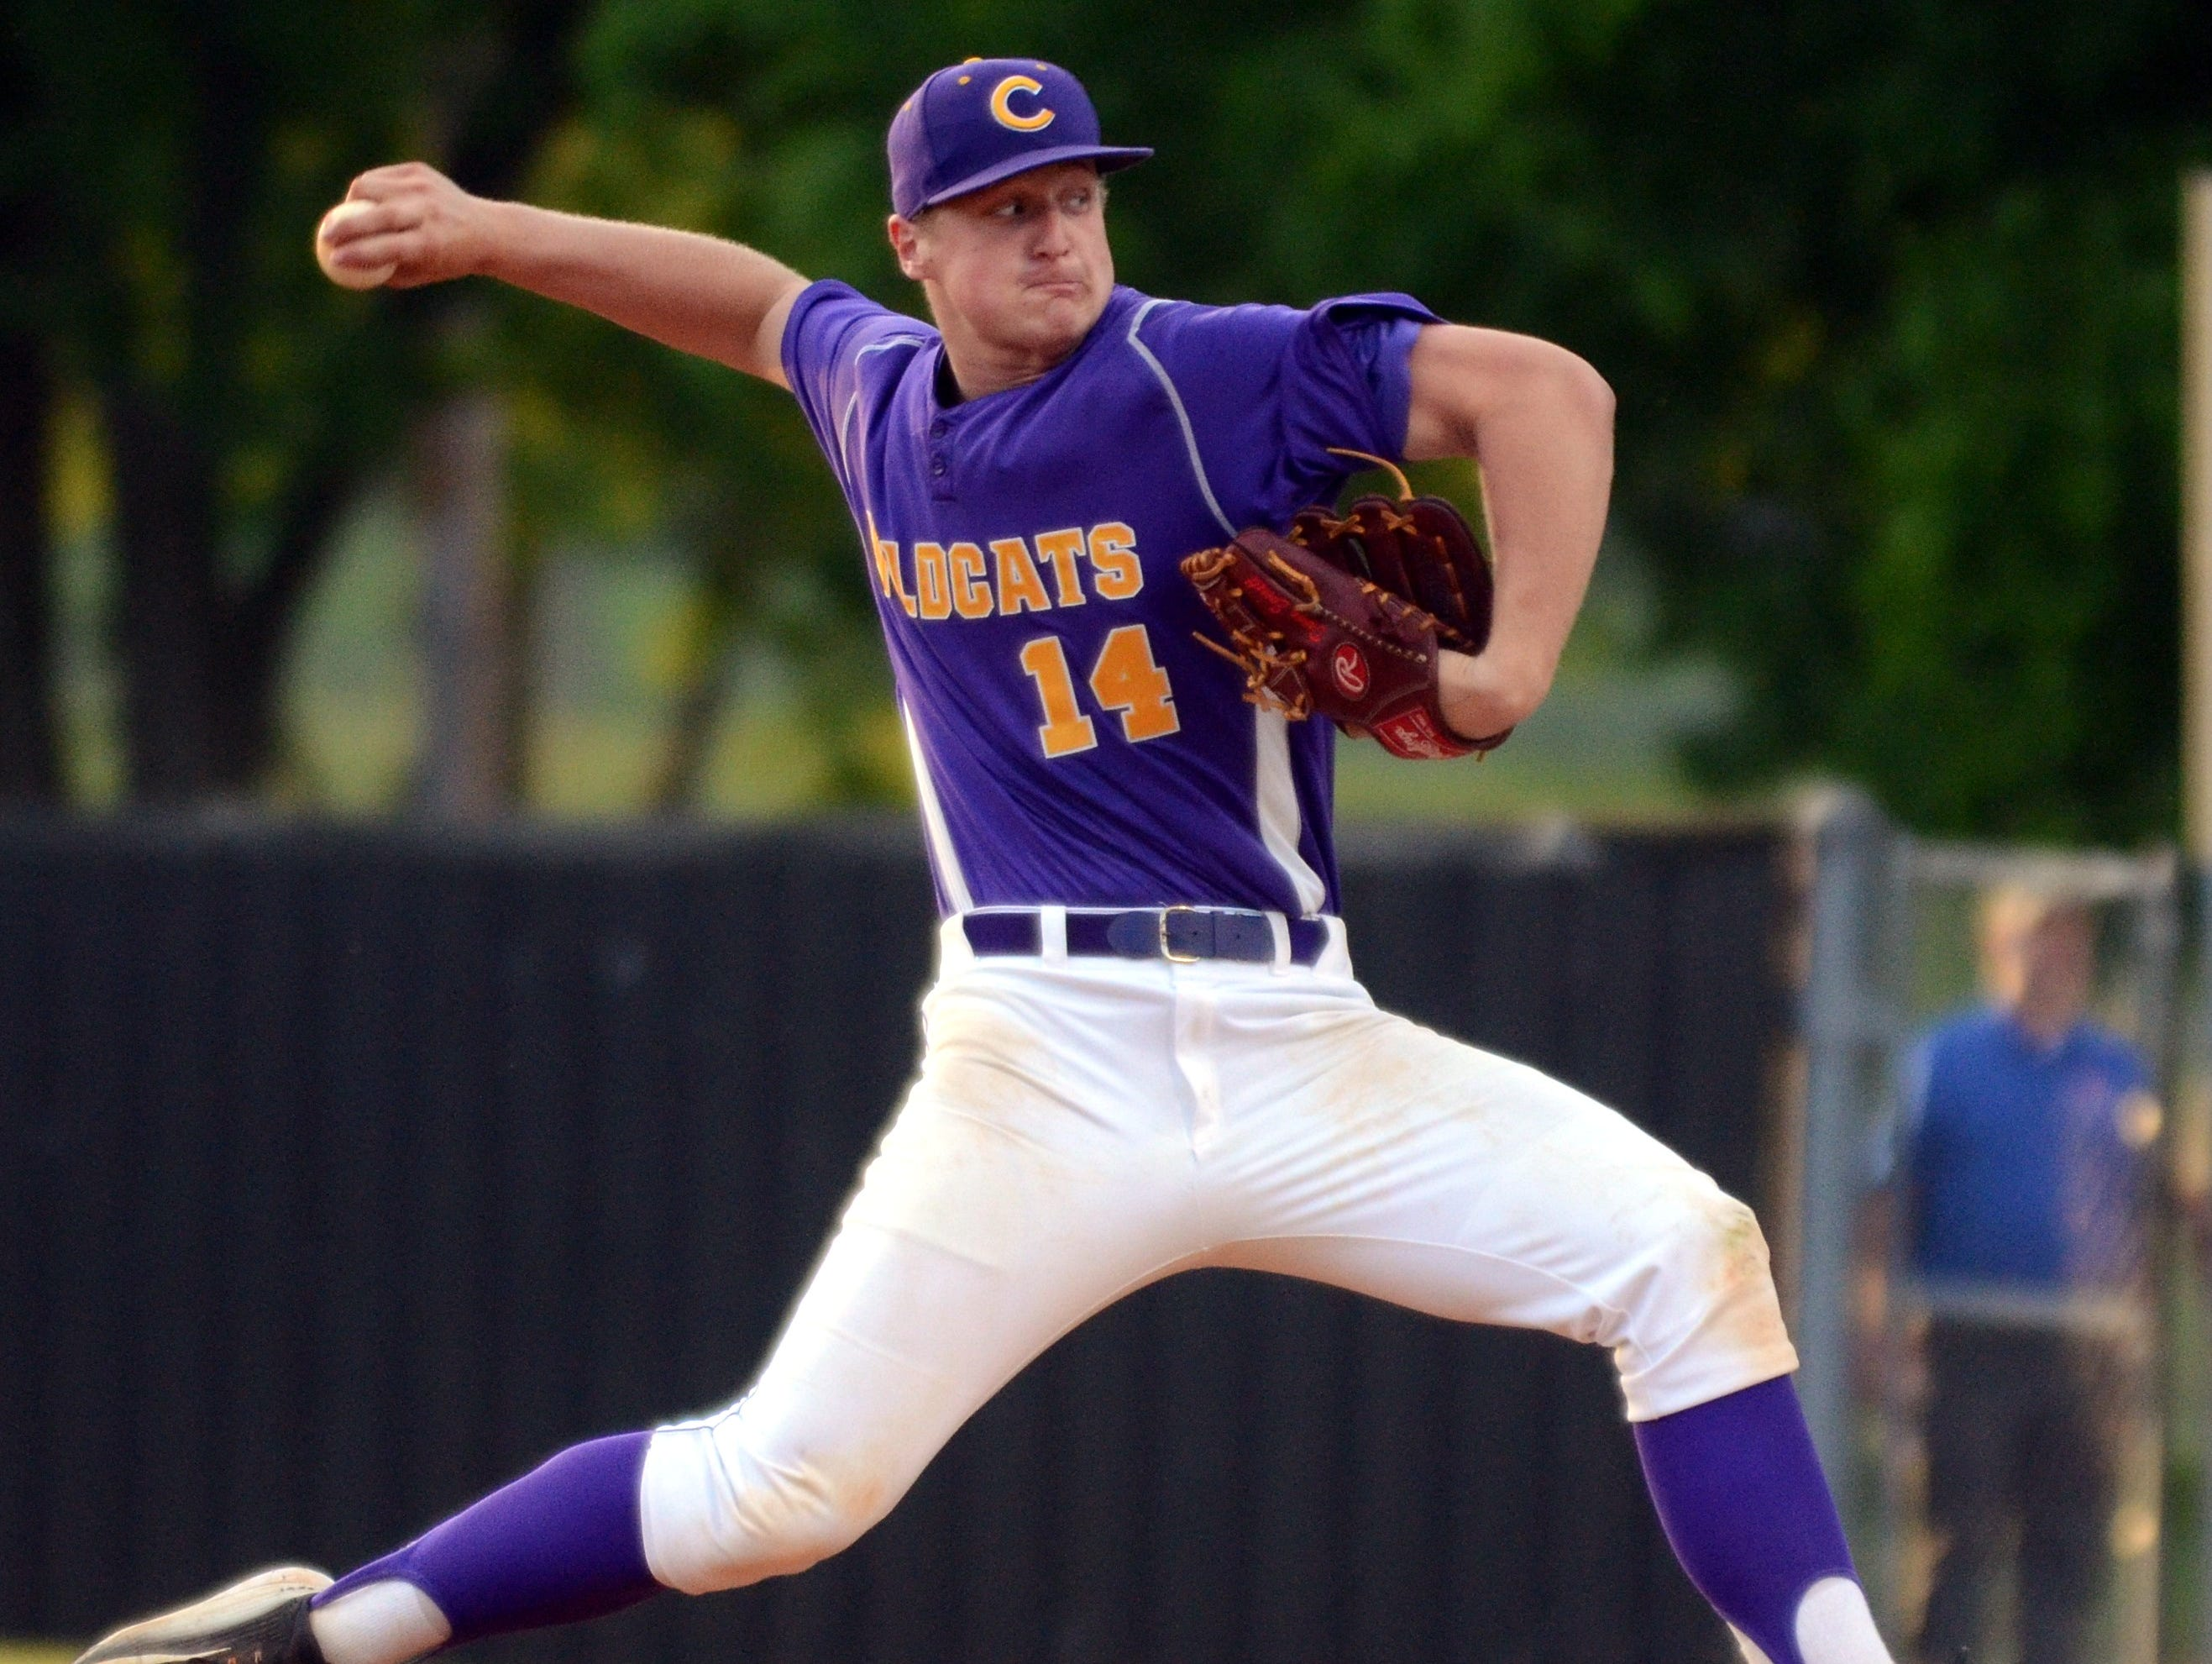 Clarksville High senior Donny Everett delivers a pitch during a recent game. Everett was named Class AAA Mr. Baseball during the inaugural awards Tuesday.